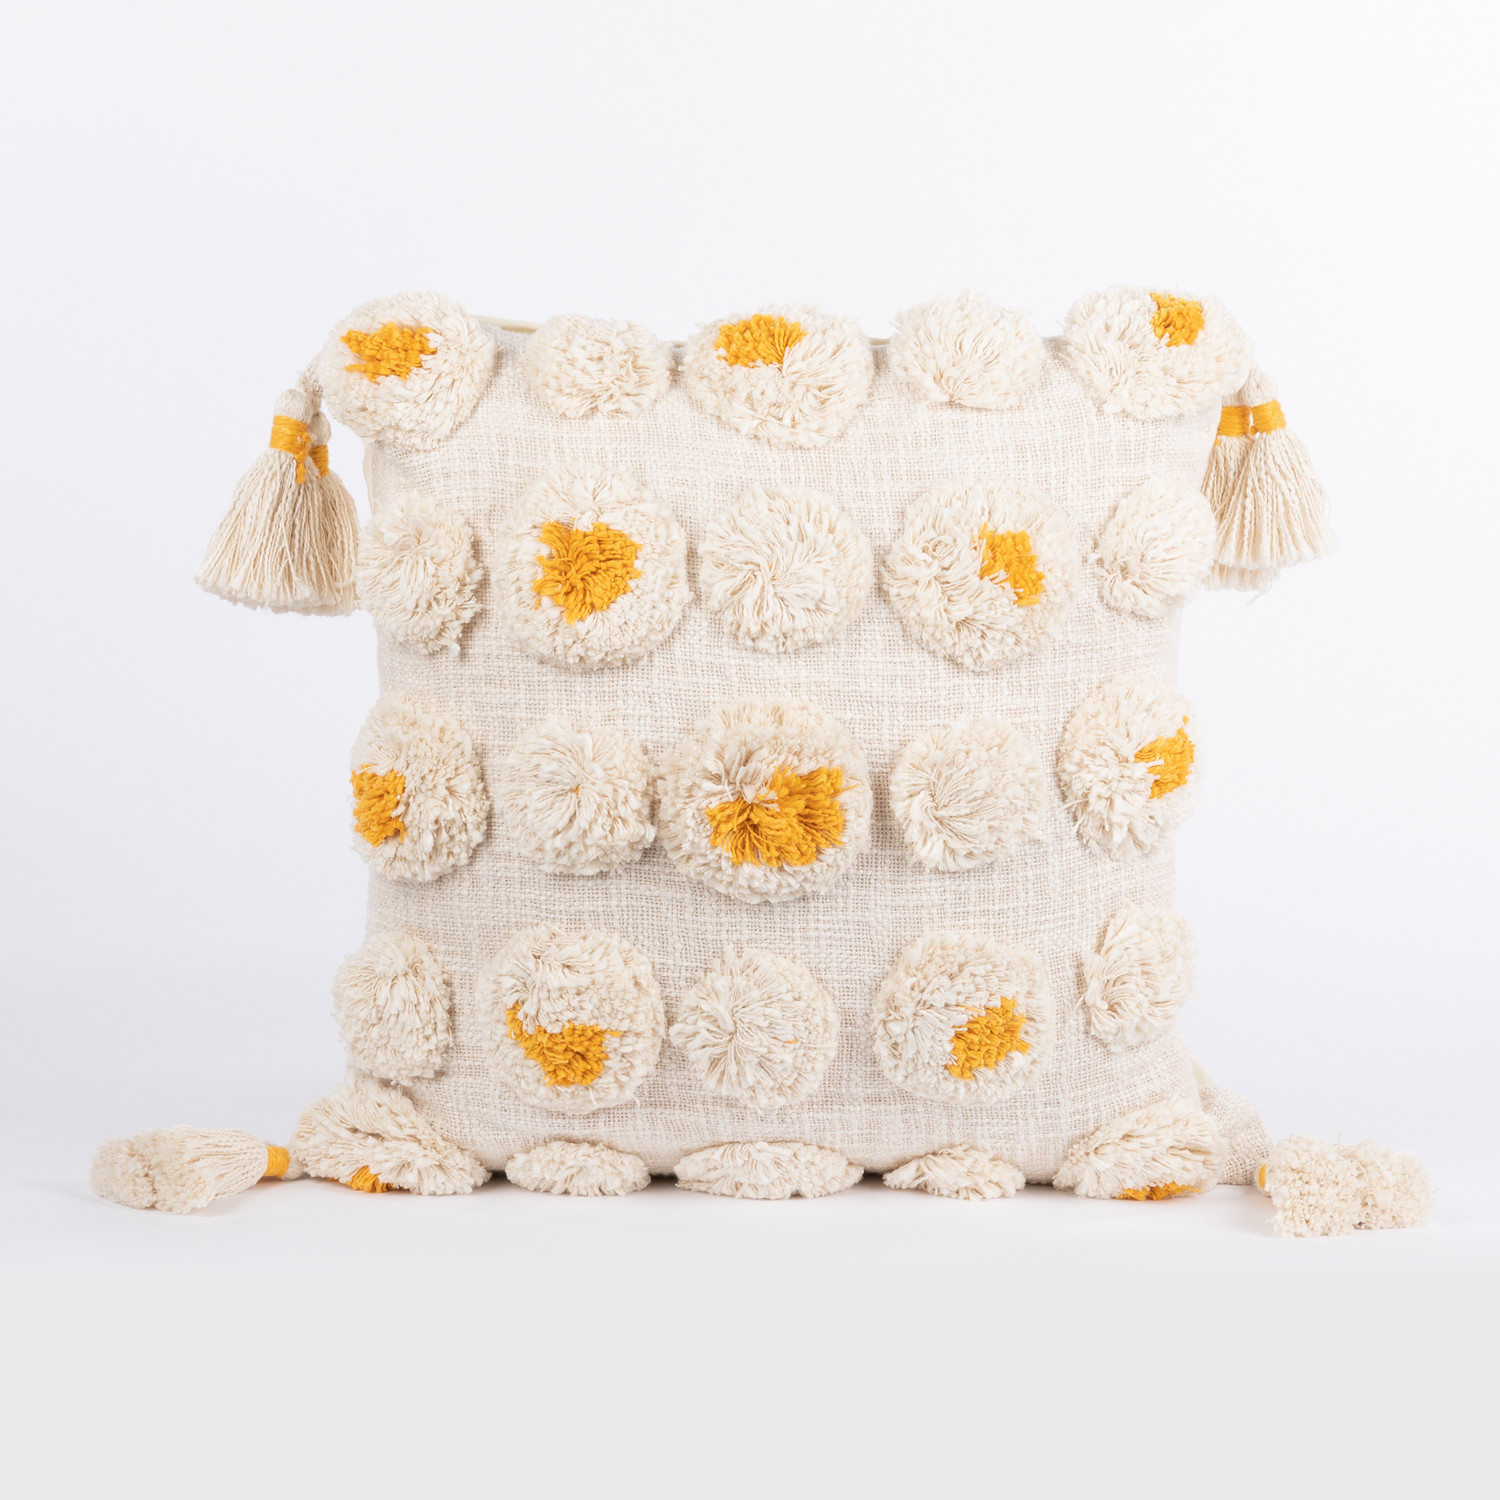 Yehm Cushion Cover, gallery image 1